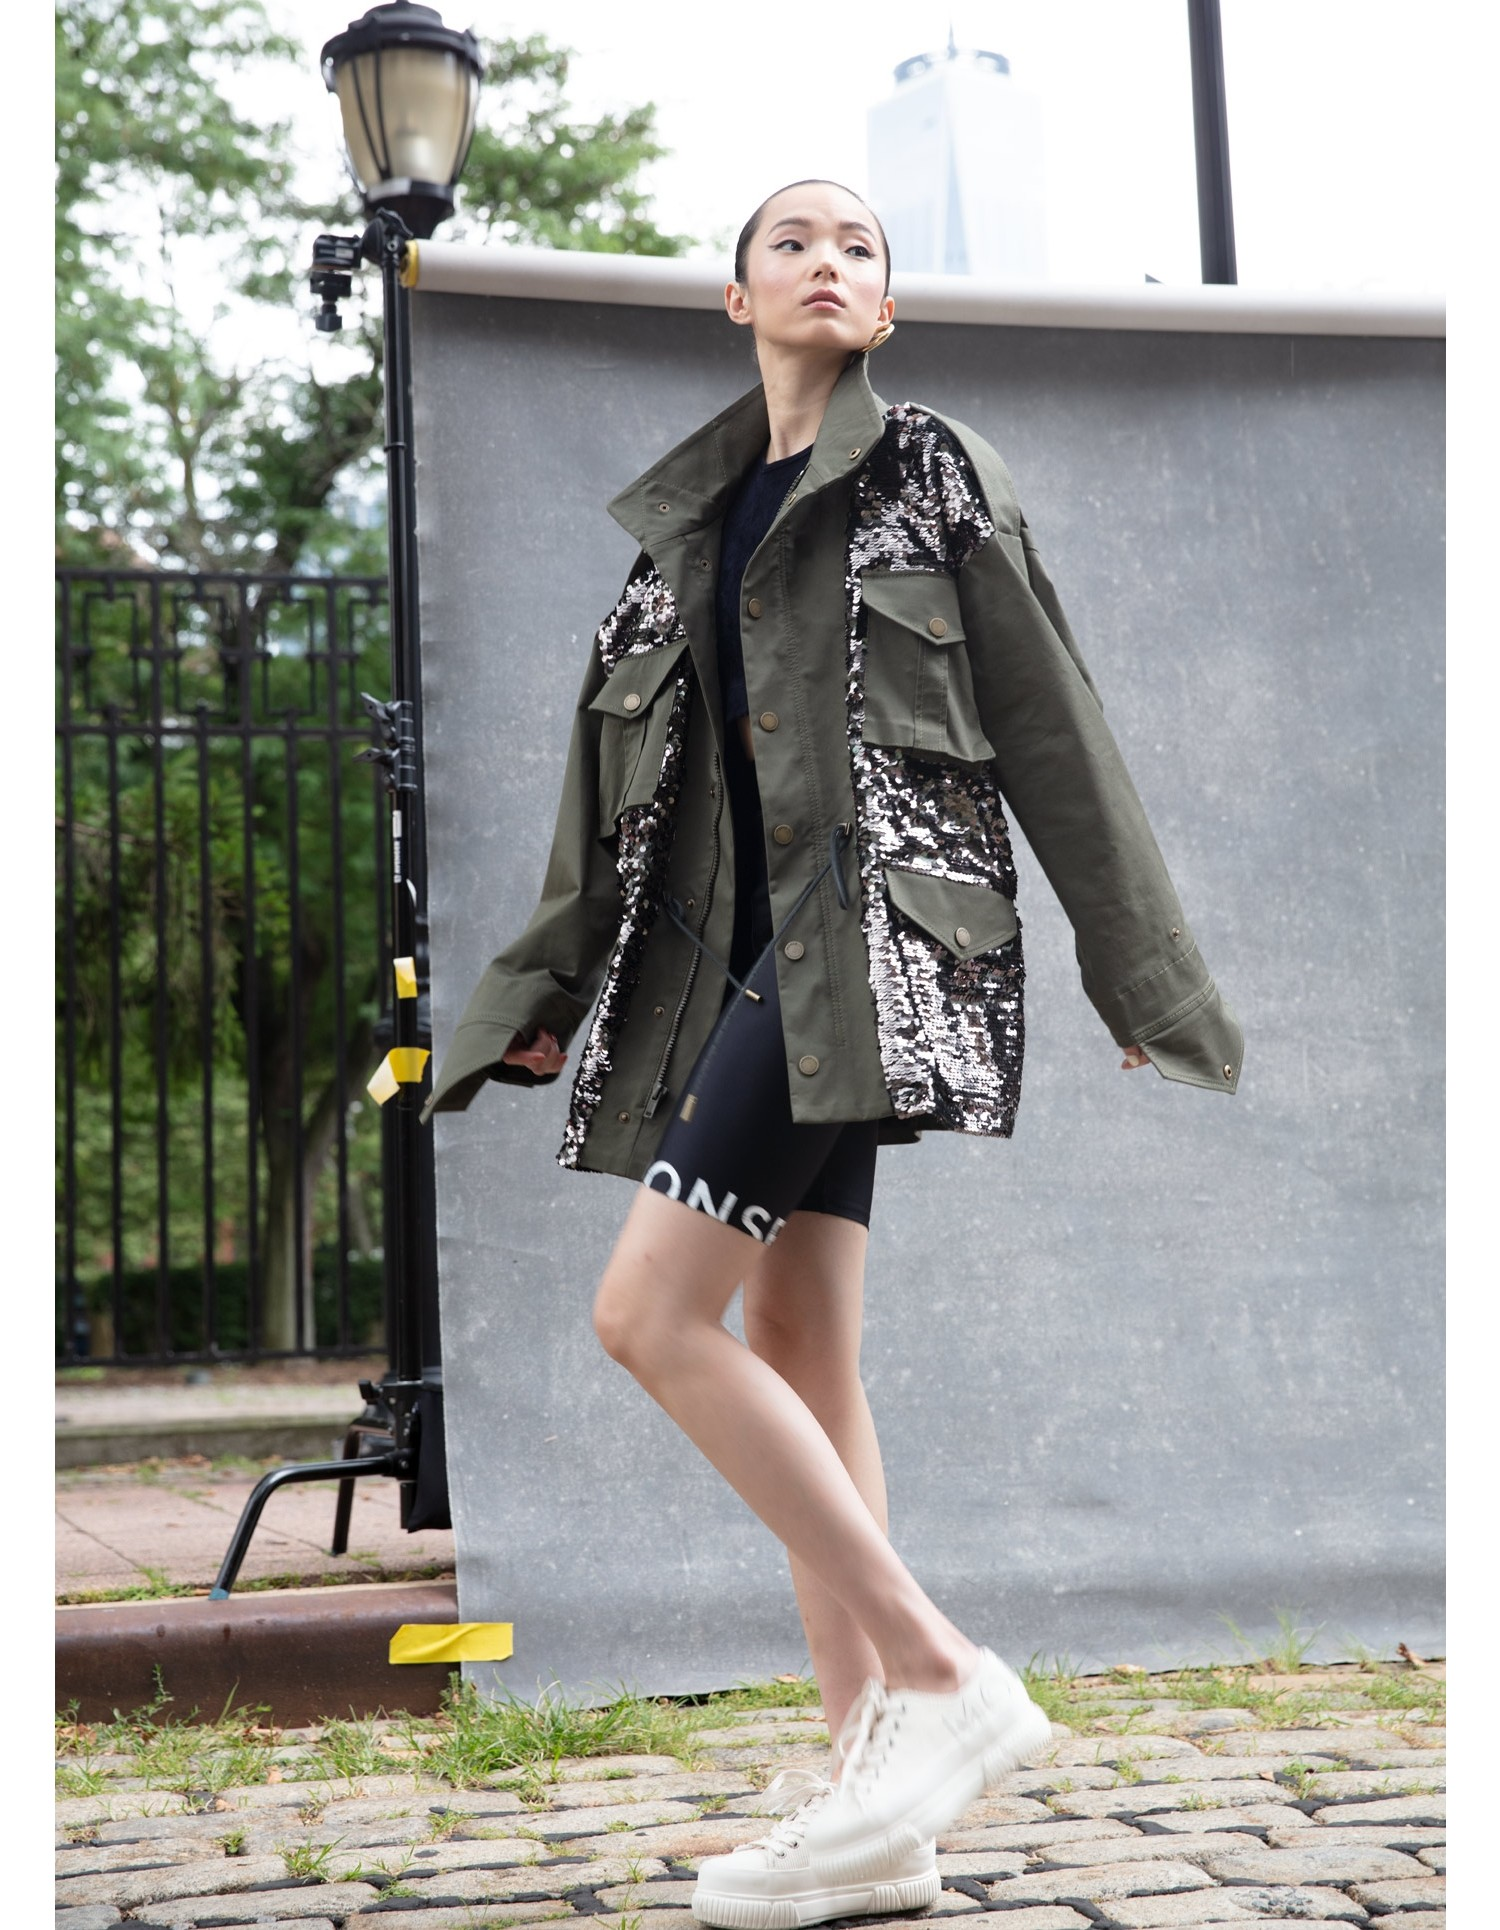 MONSE Sequined Field Jacket in Olive and Taupe on Model Side View